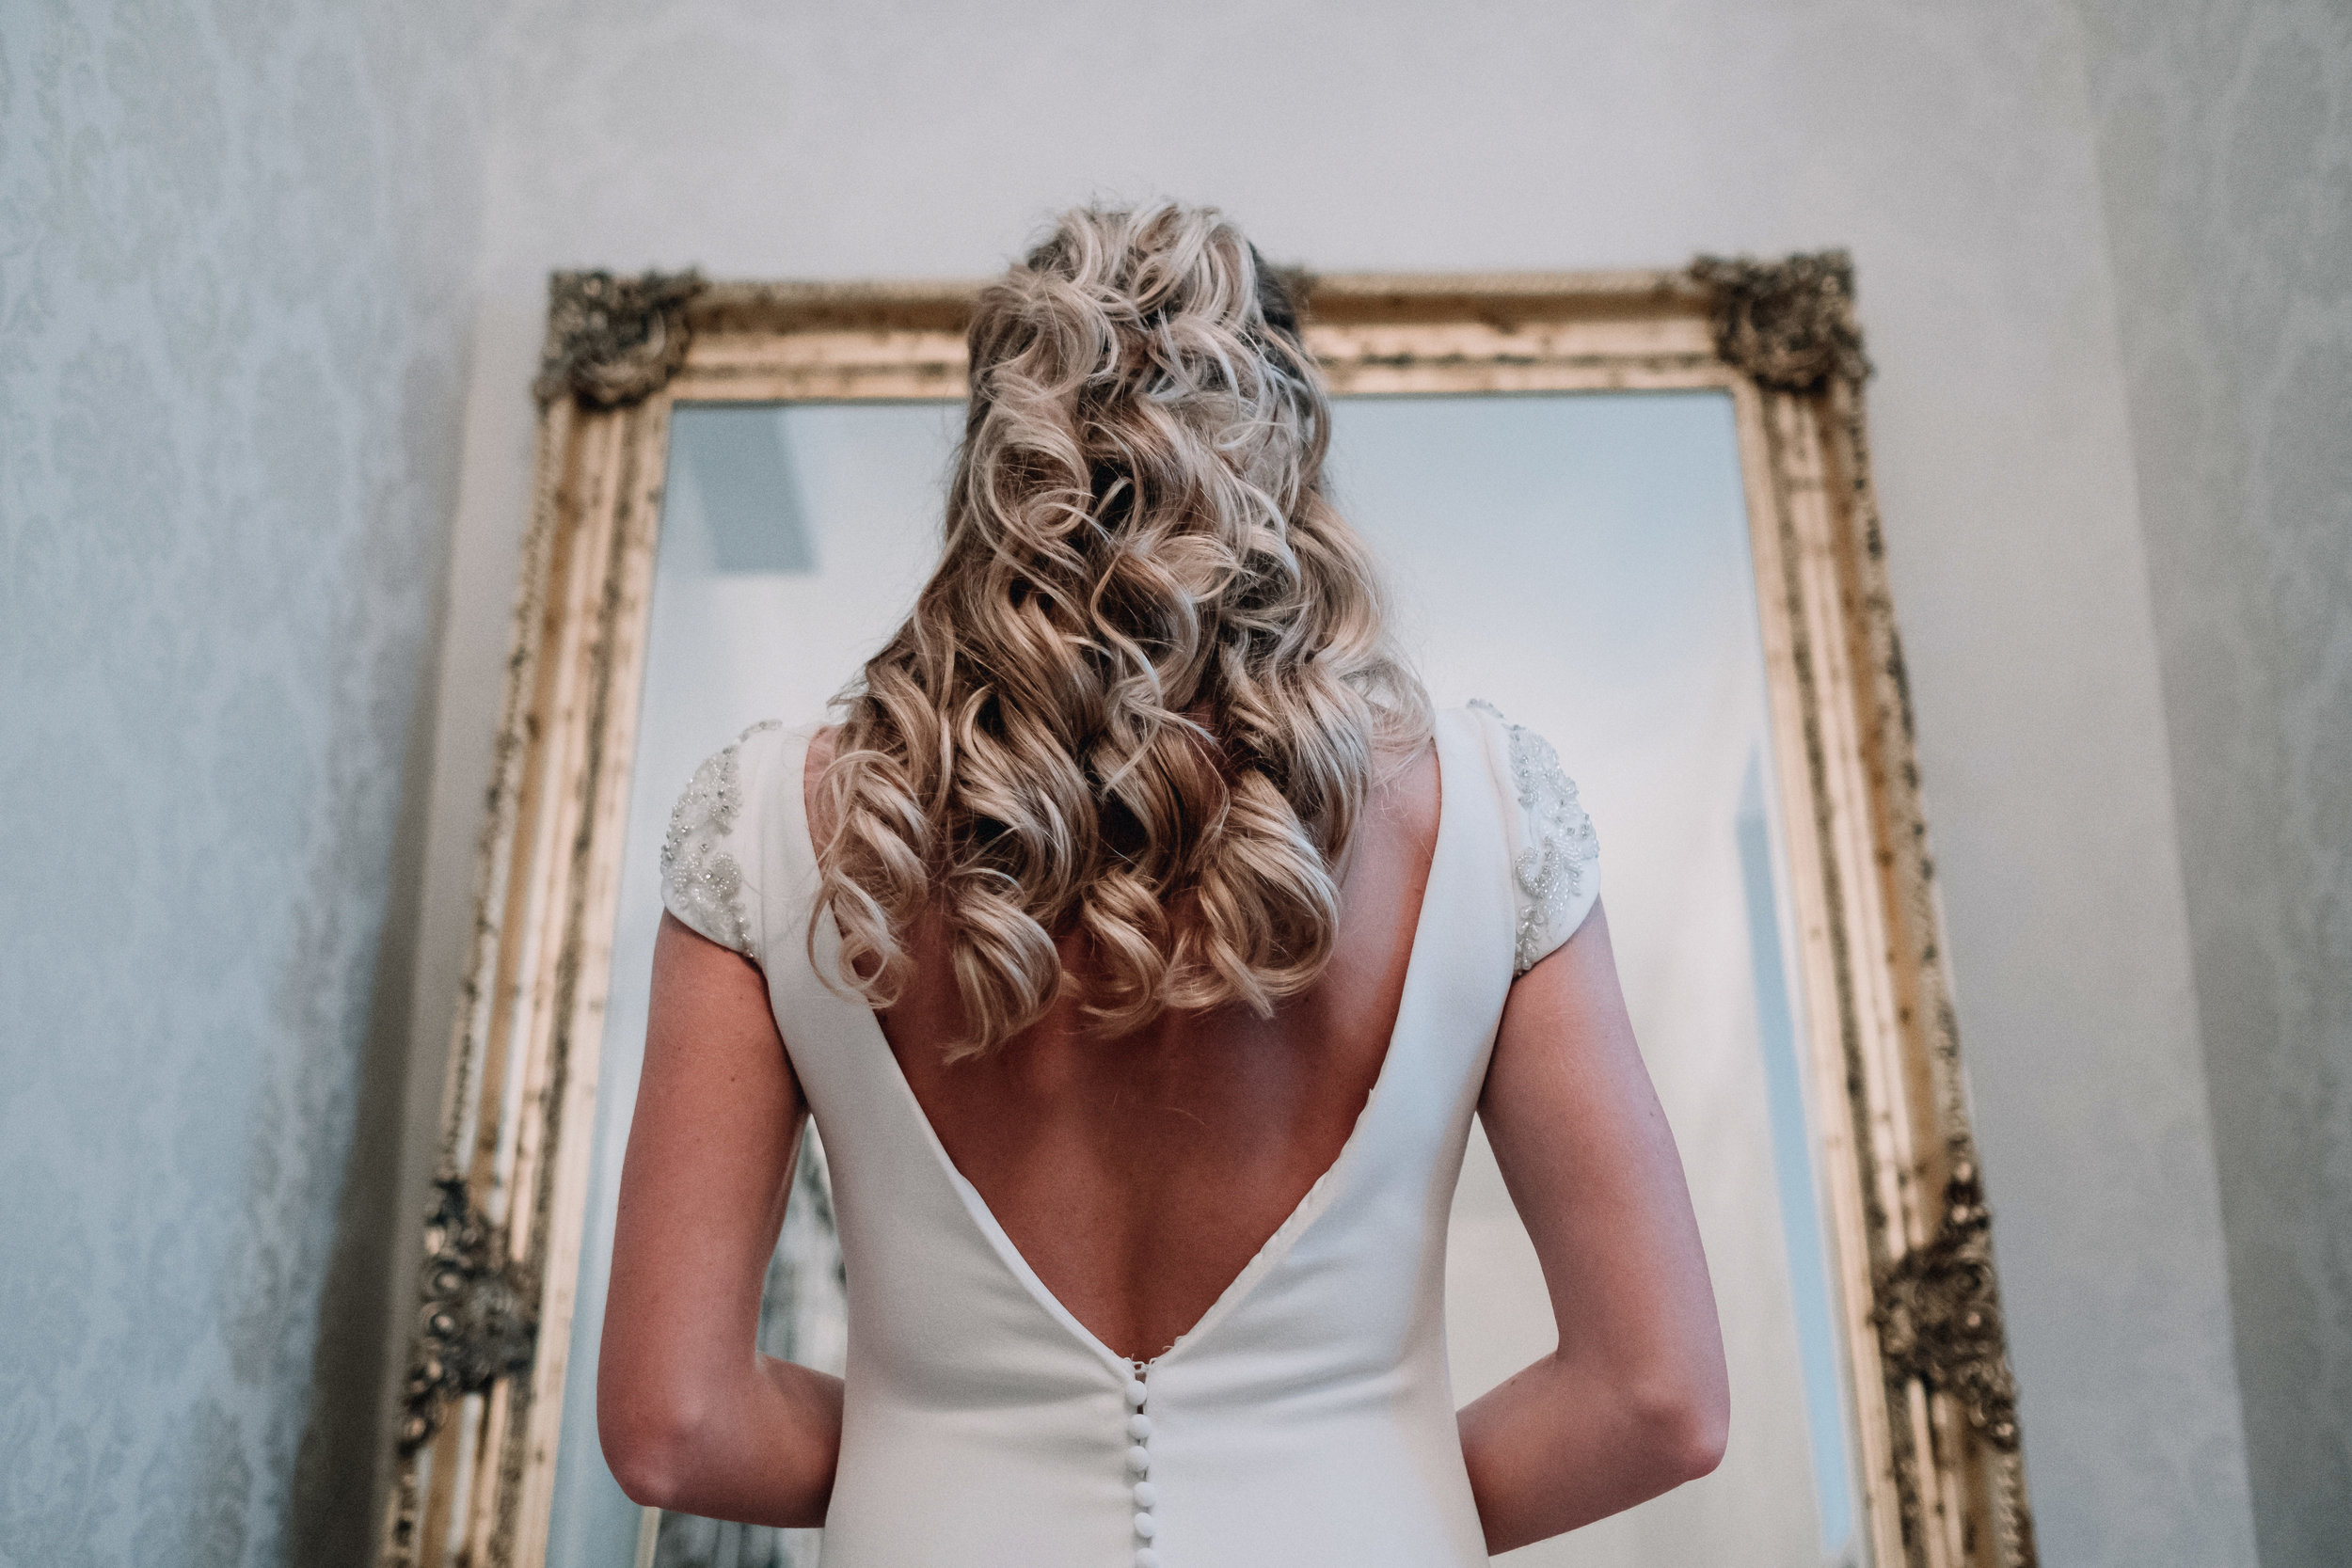 Bride looking at herself in a mirror